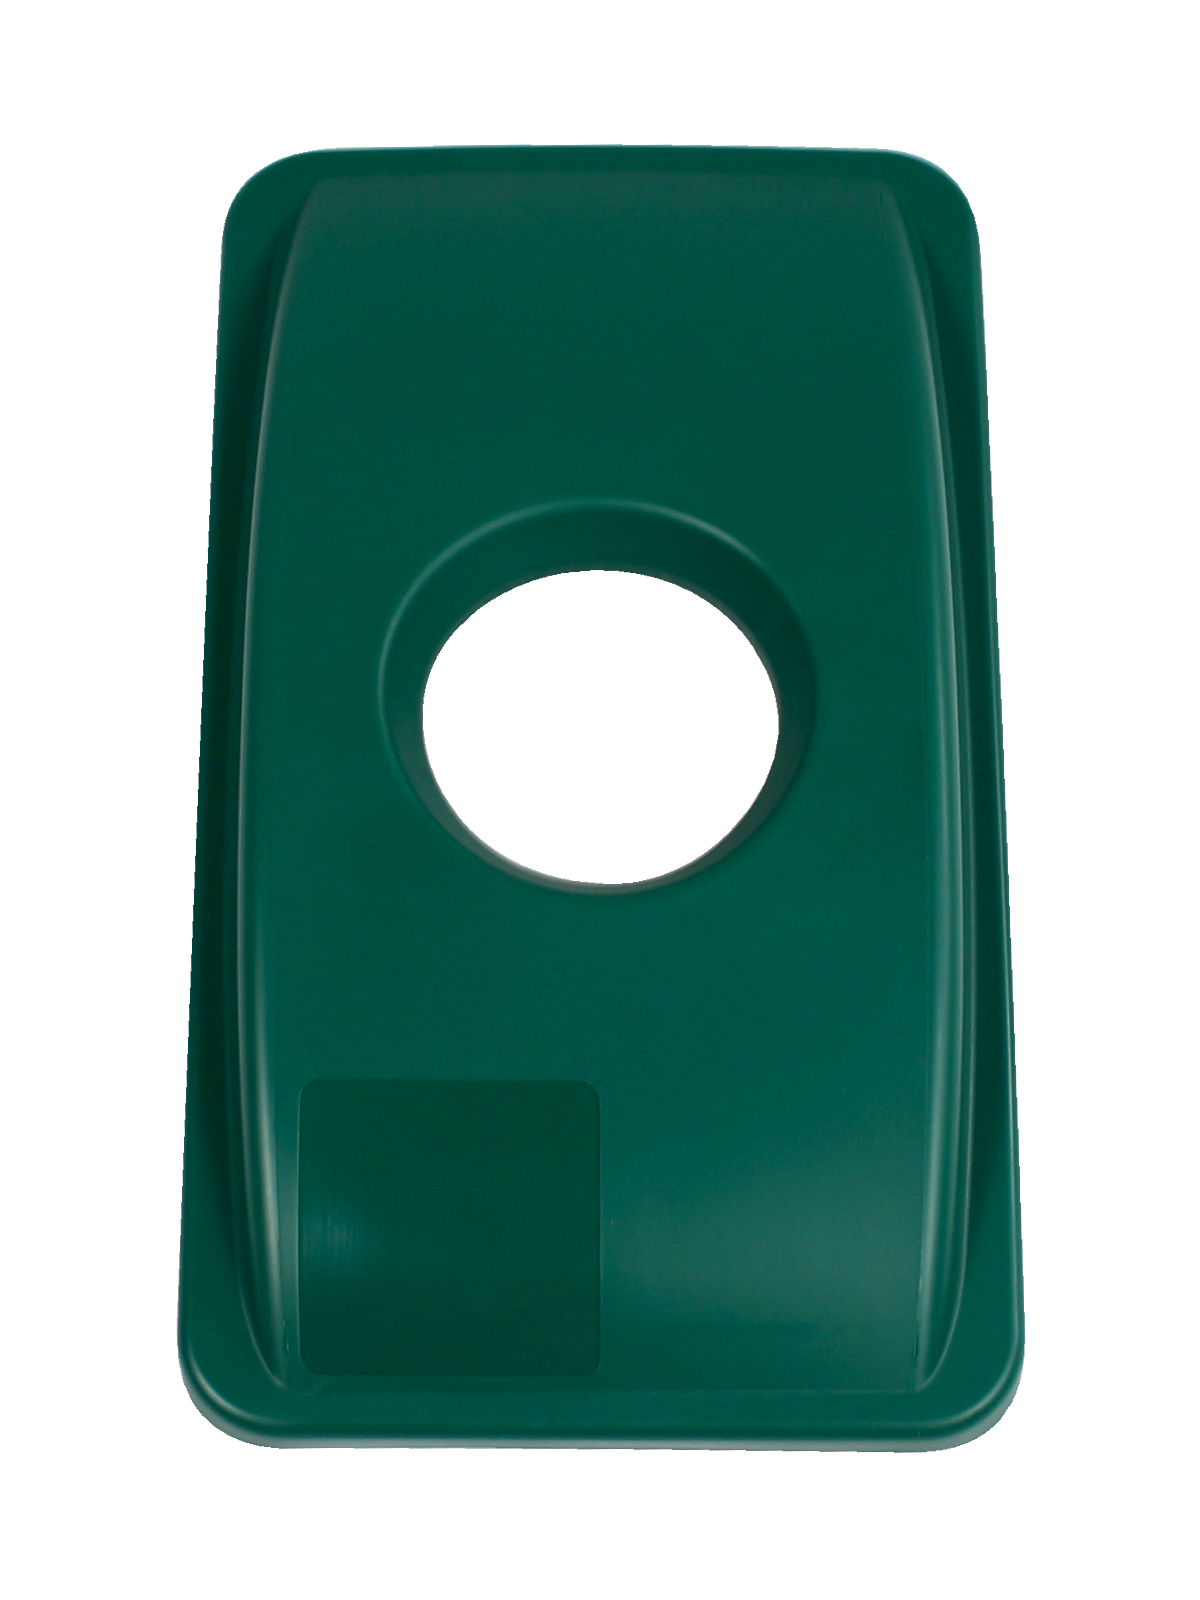 WASTE WATCHER - Single - Lid - Circle - Green